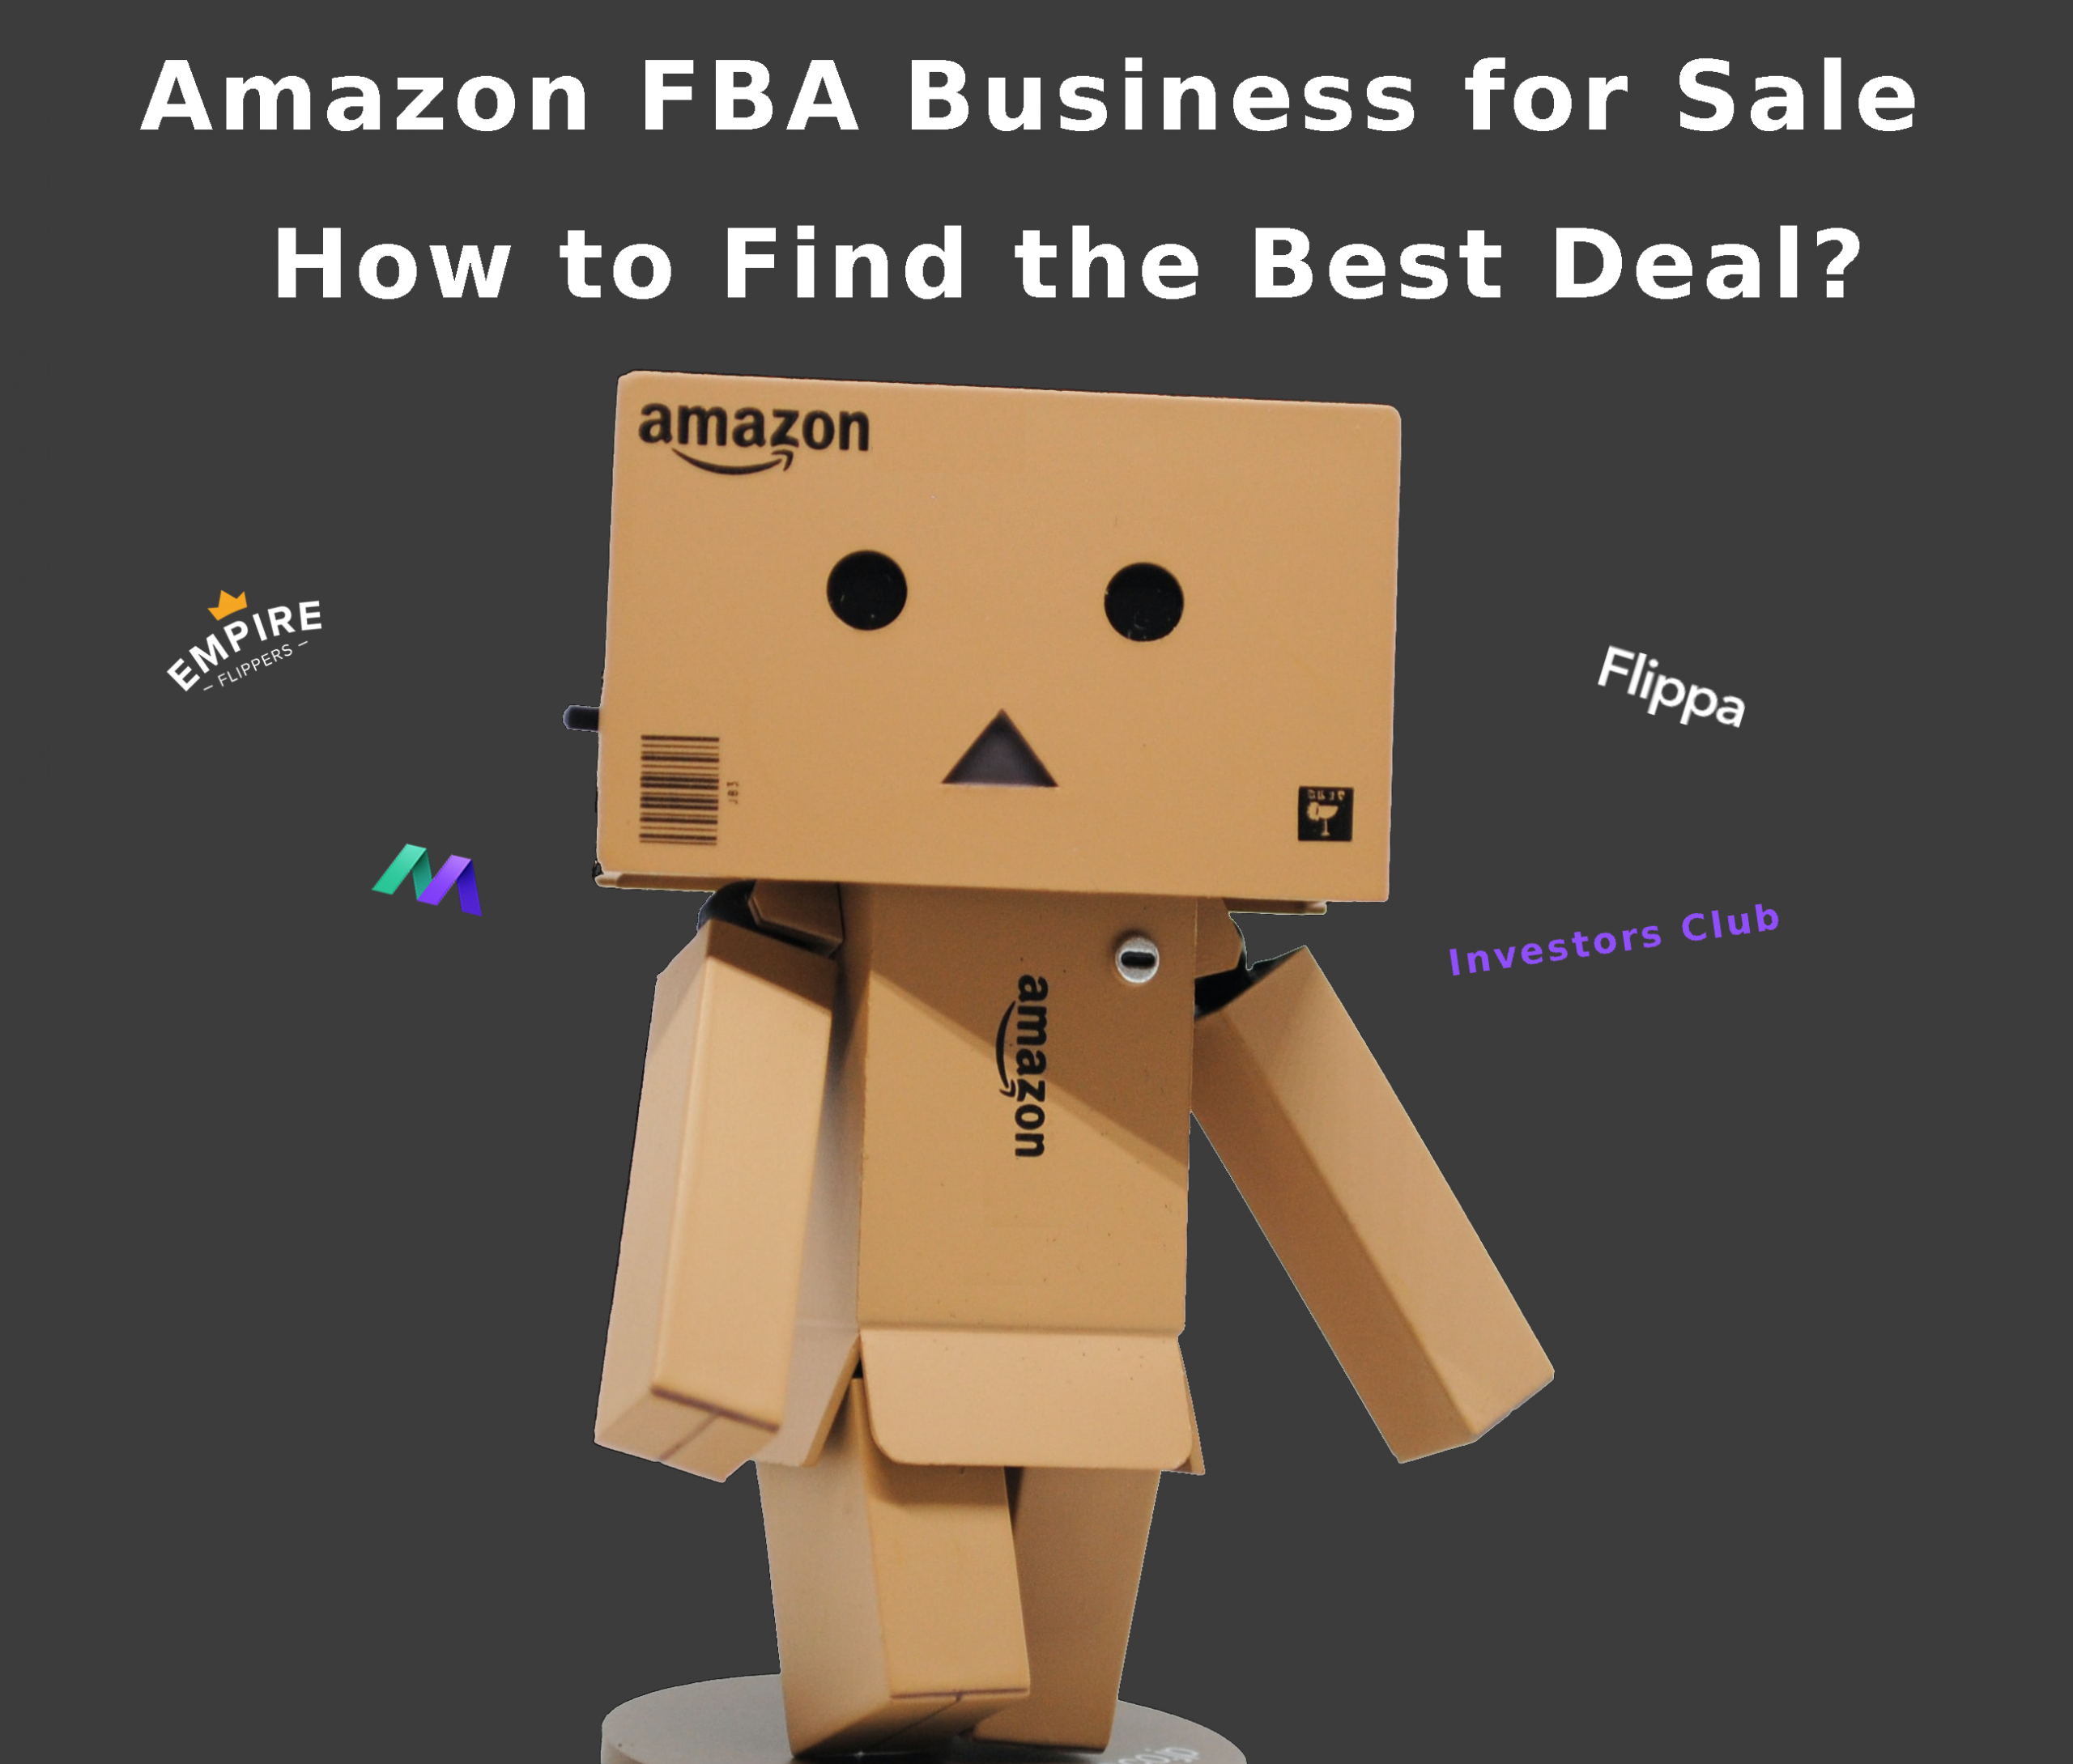 Amazon FBA business for sale